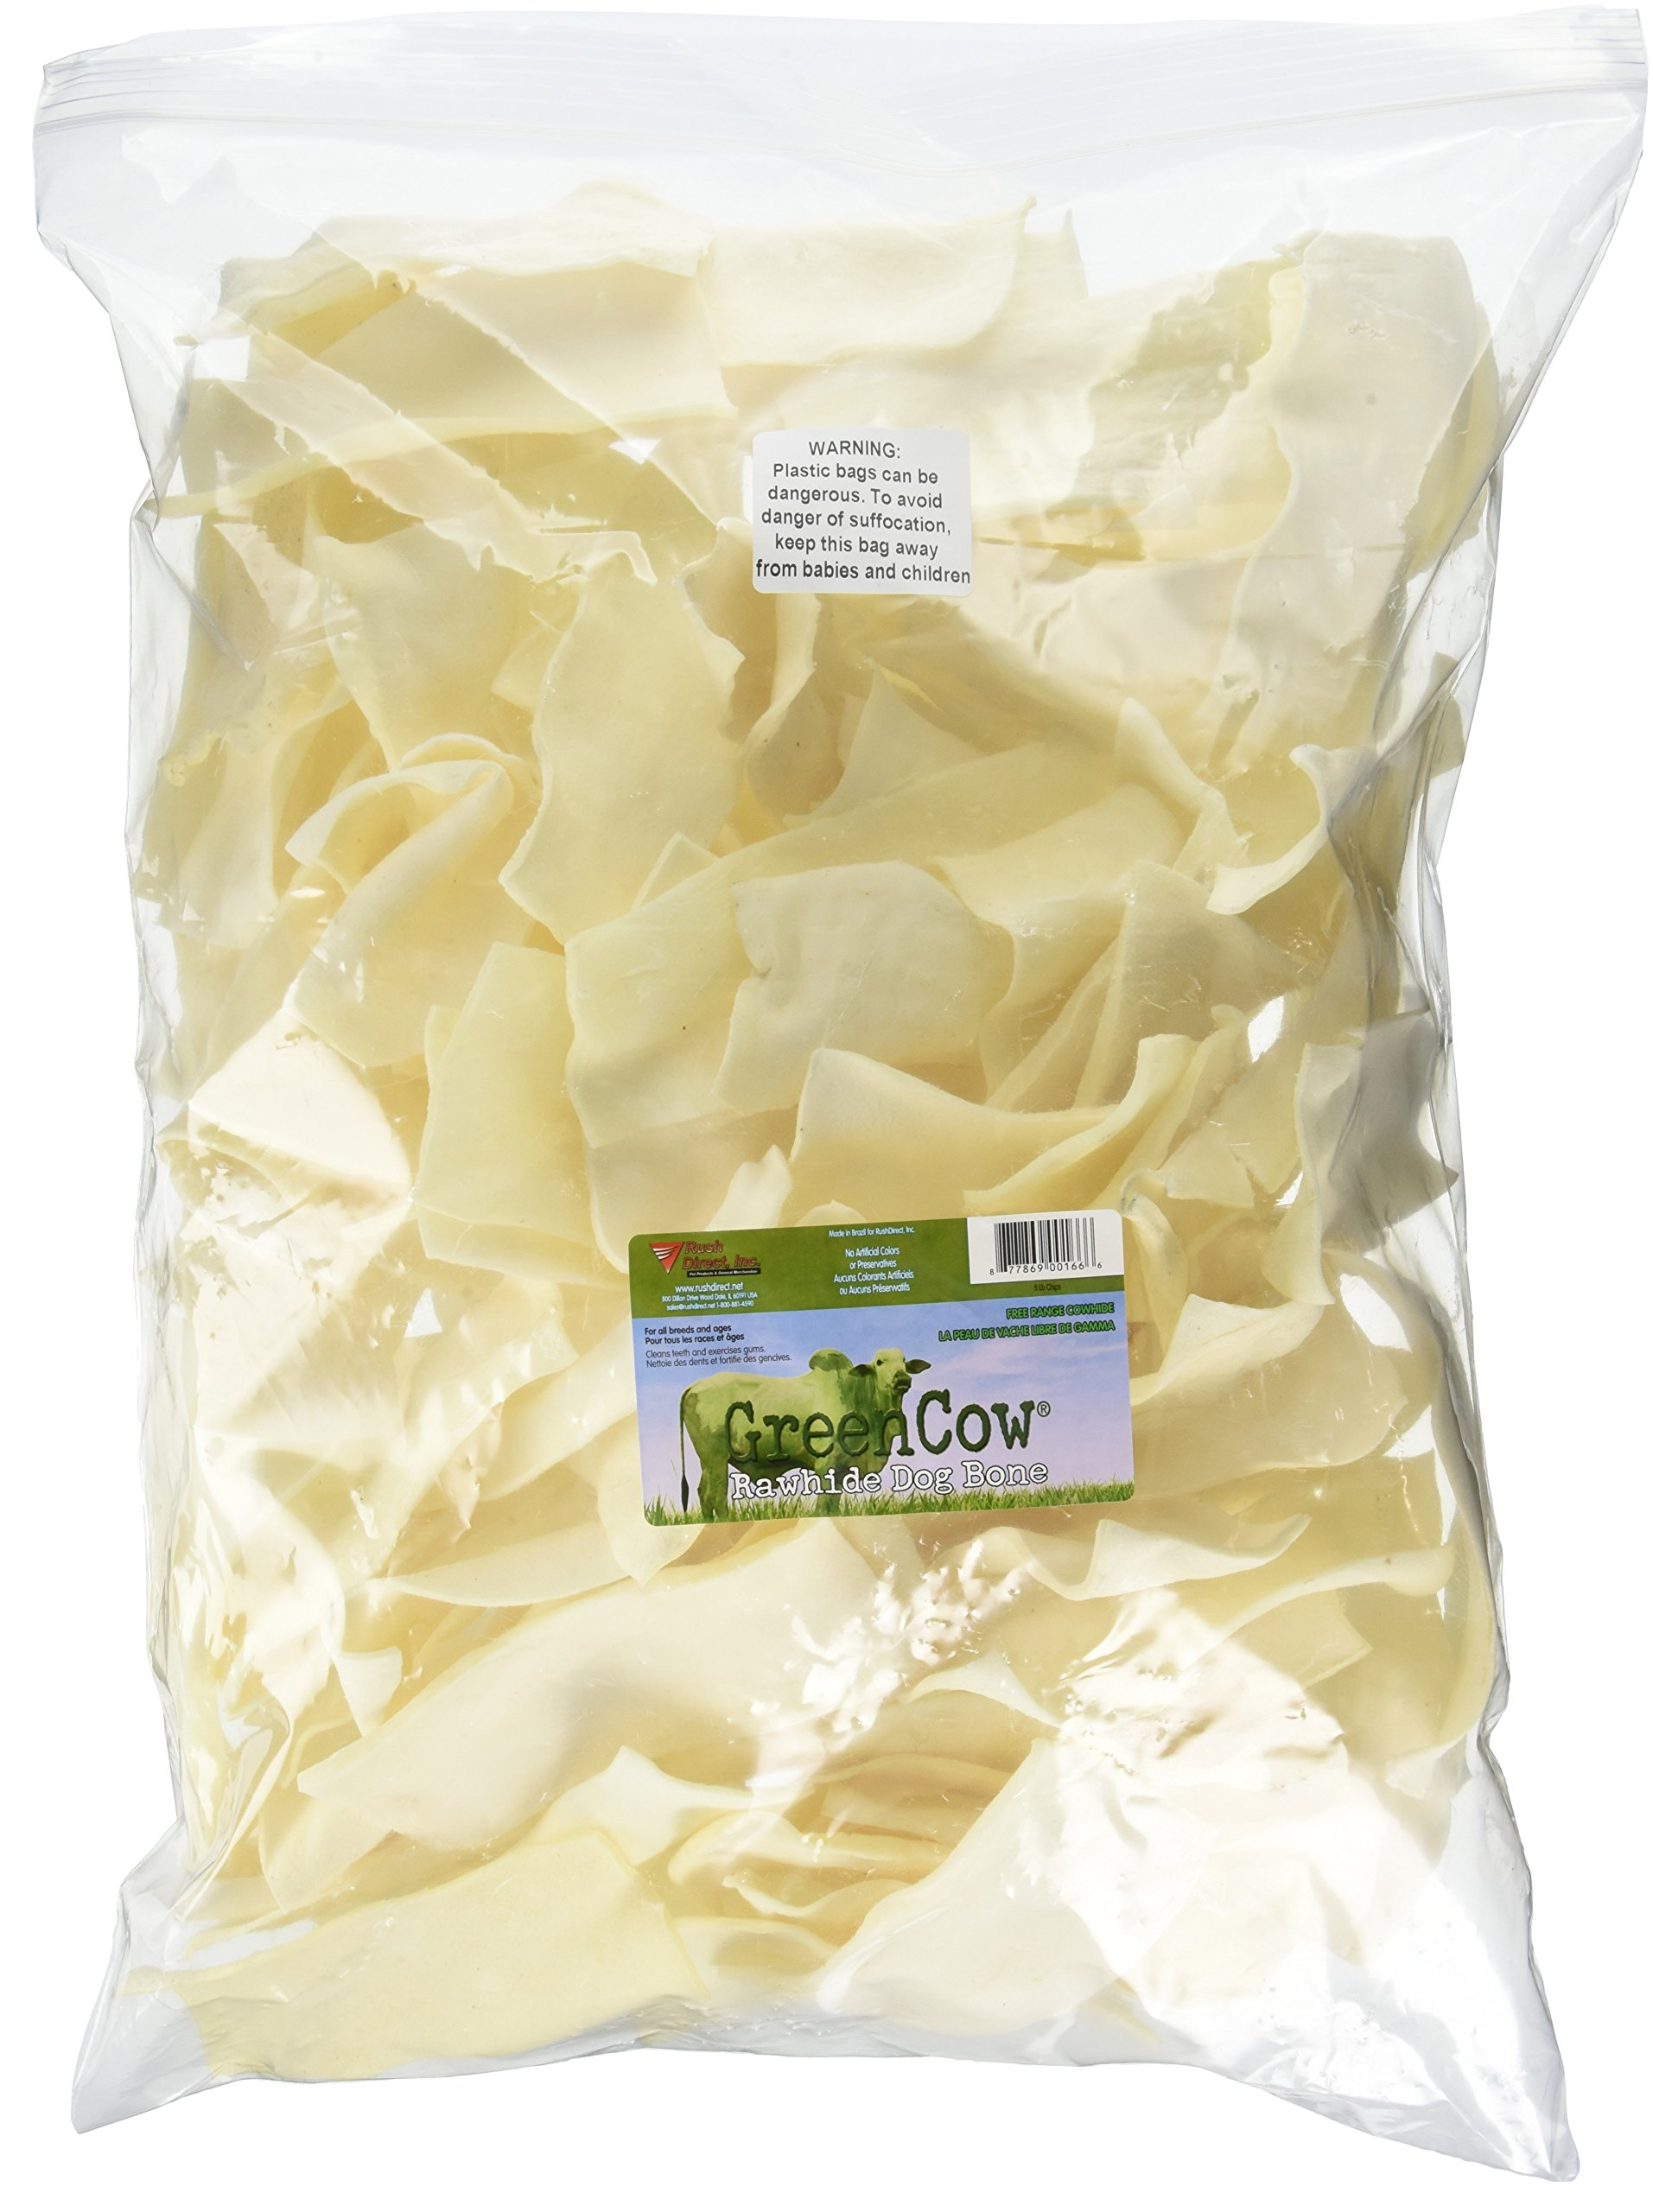 Rush Direct, Inc. Green Cow Rawhide Dog Bones, Natural Chips, 5-Pound Bag